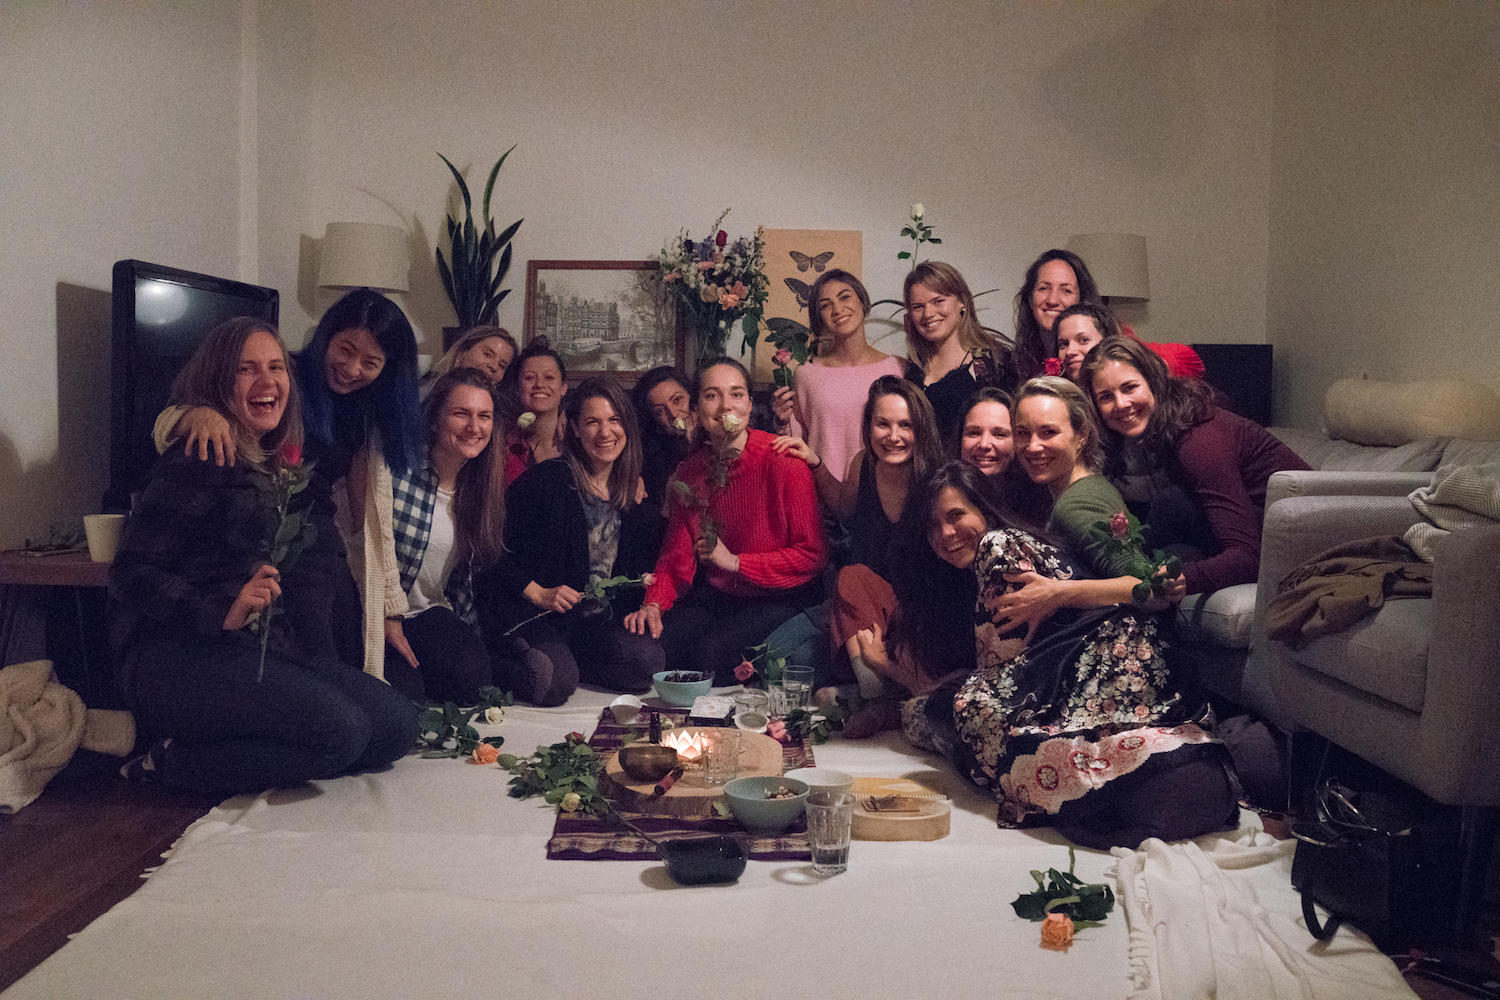 women's-circle-cacao-essential-oils-ceremony-group-photo-by-Birgit-Loit-Isadora-Caporali-The-Wong-Janice-cellist-Amsteram.jpg